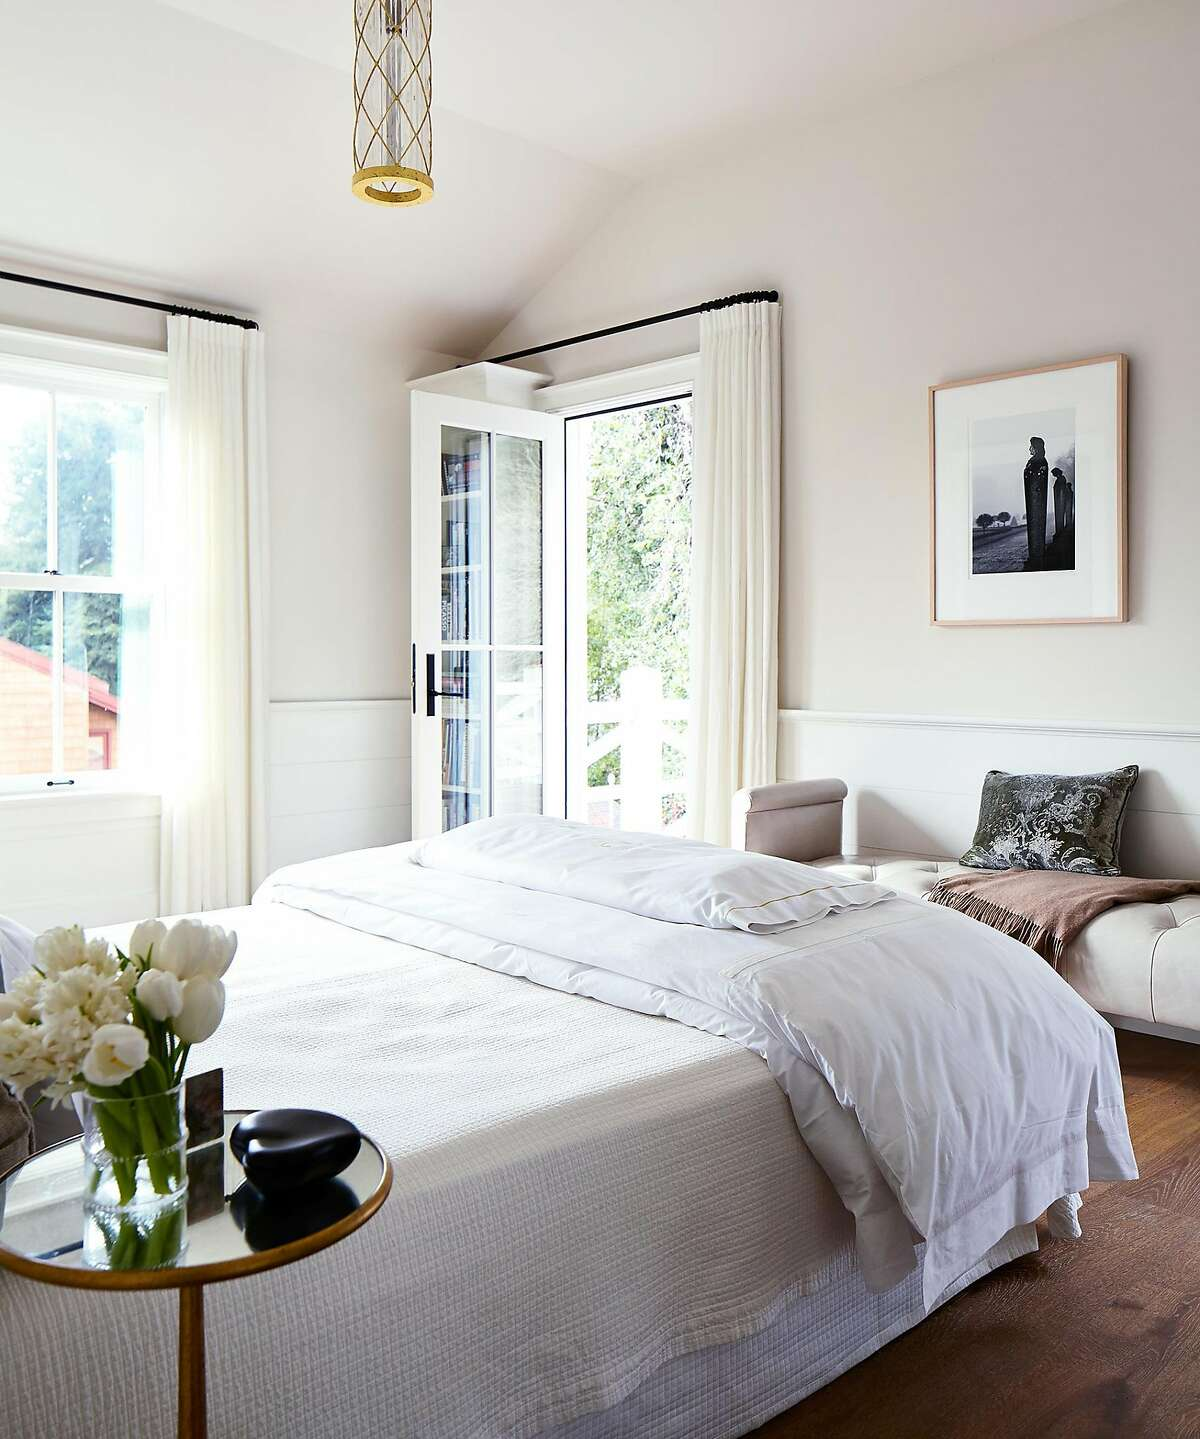 This Mill Valley bedroom opens to the outdoors and features custom lighting and window treatments.�